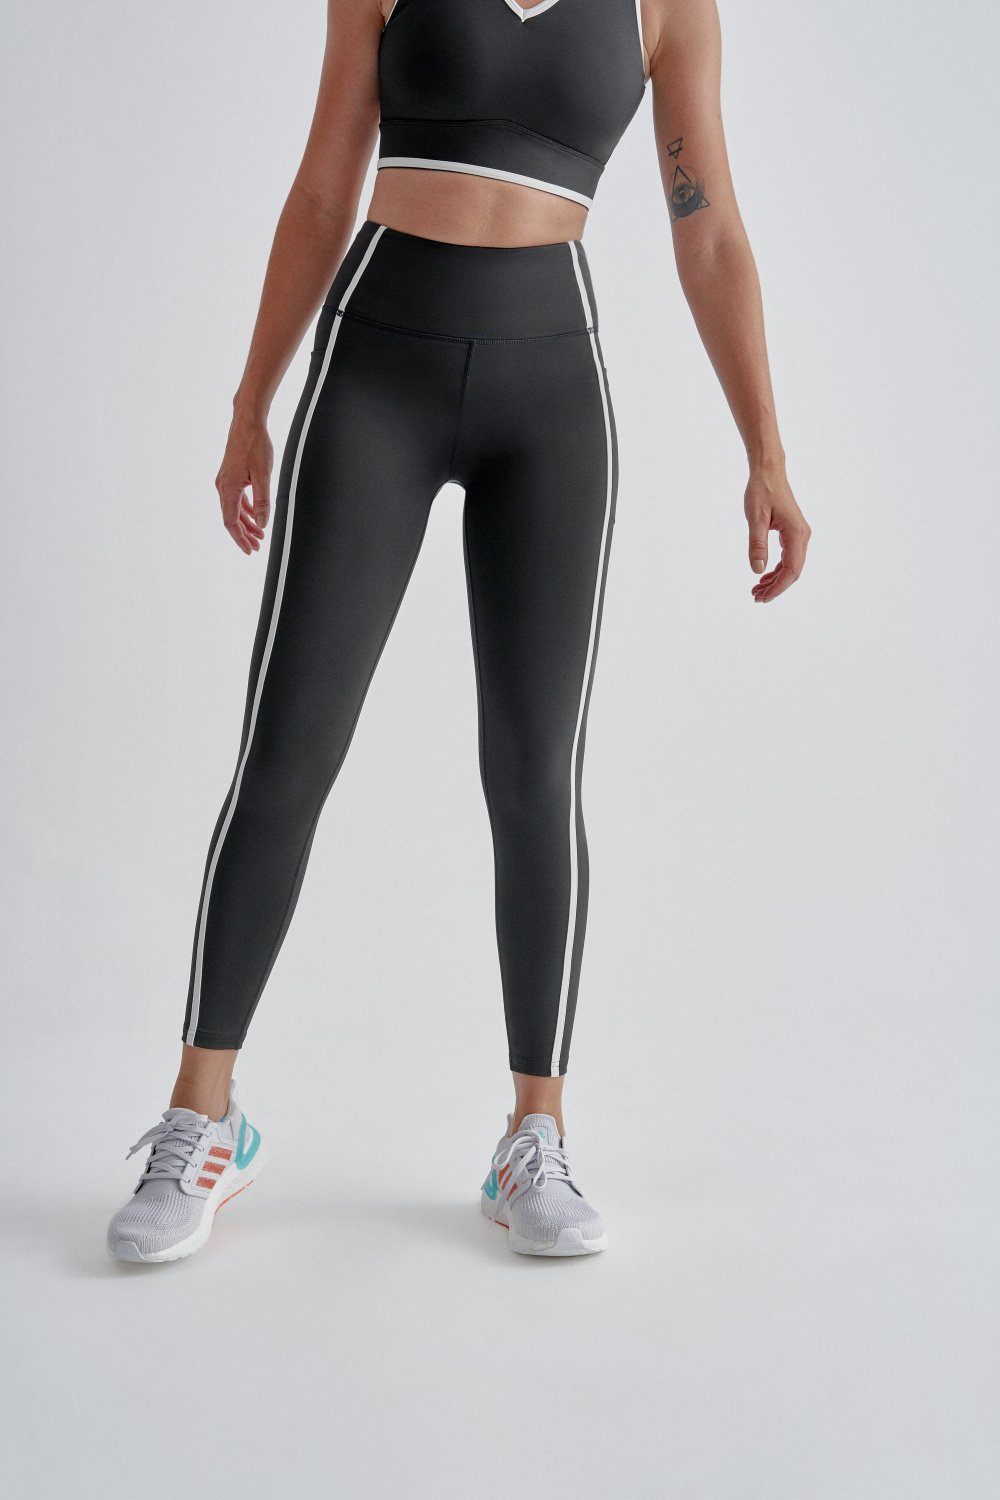 Legging Cycle ´Black Limba´ - Salsa